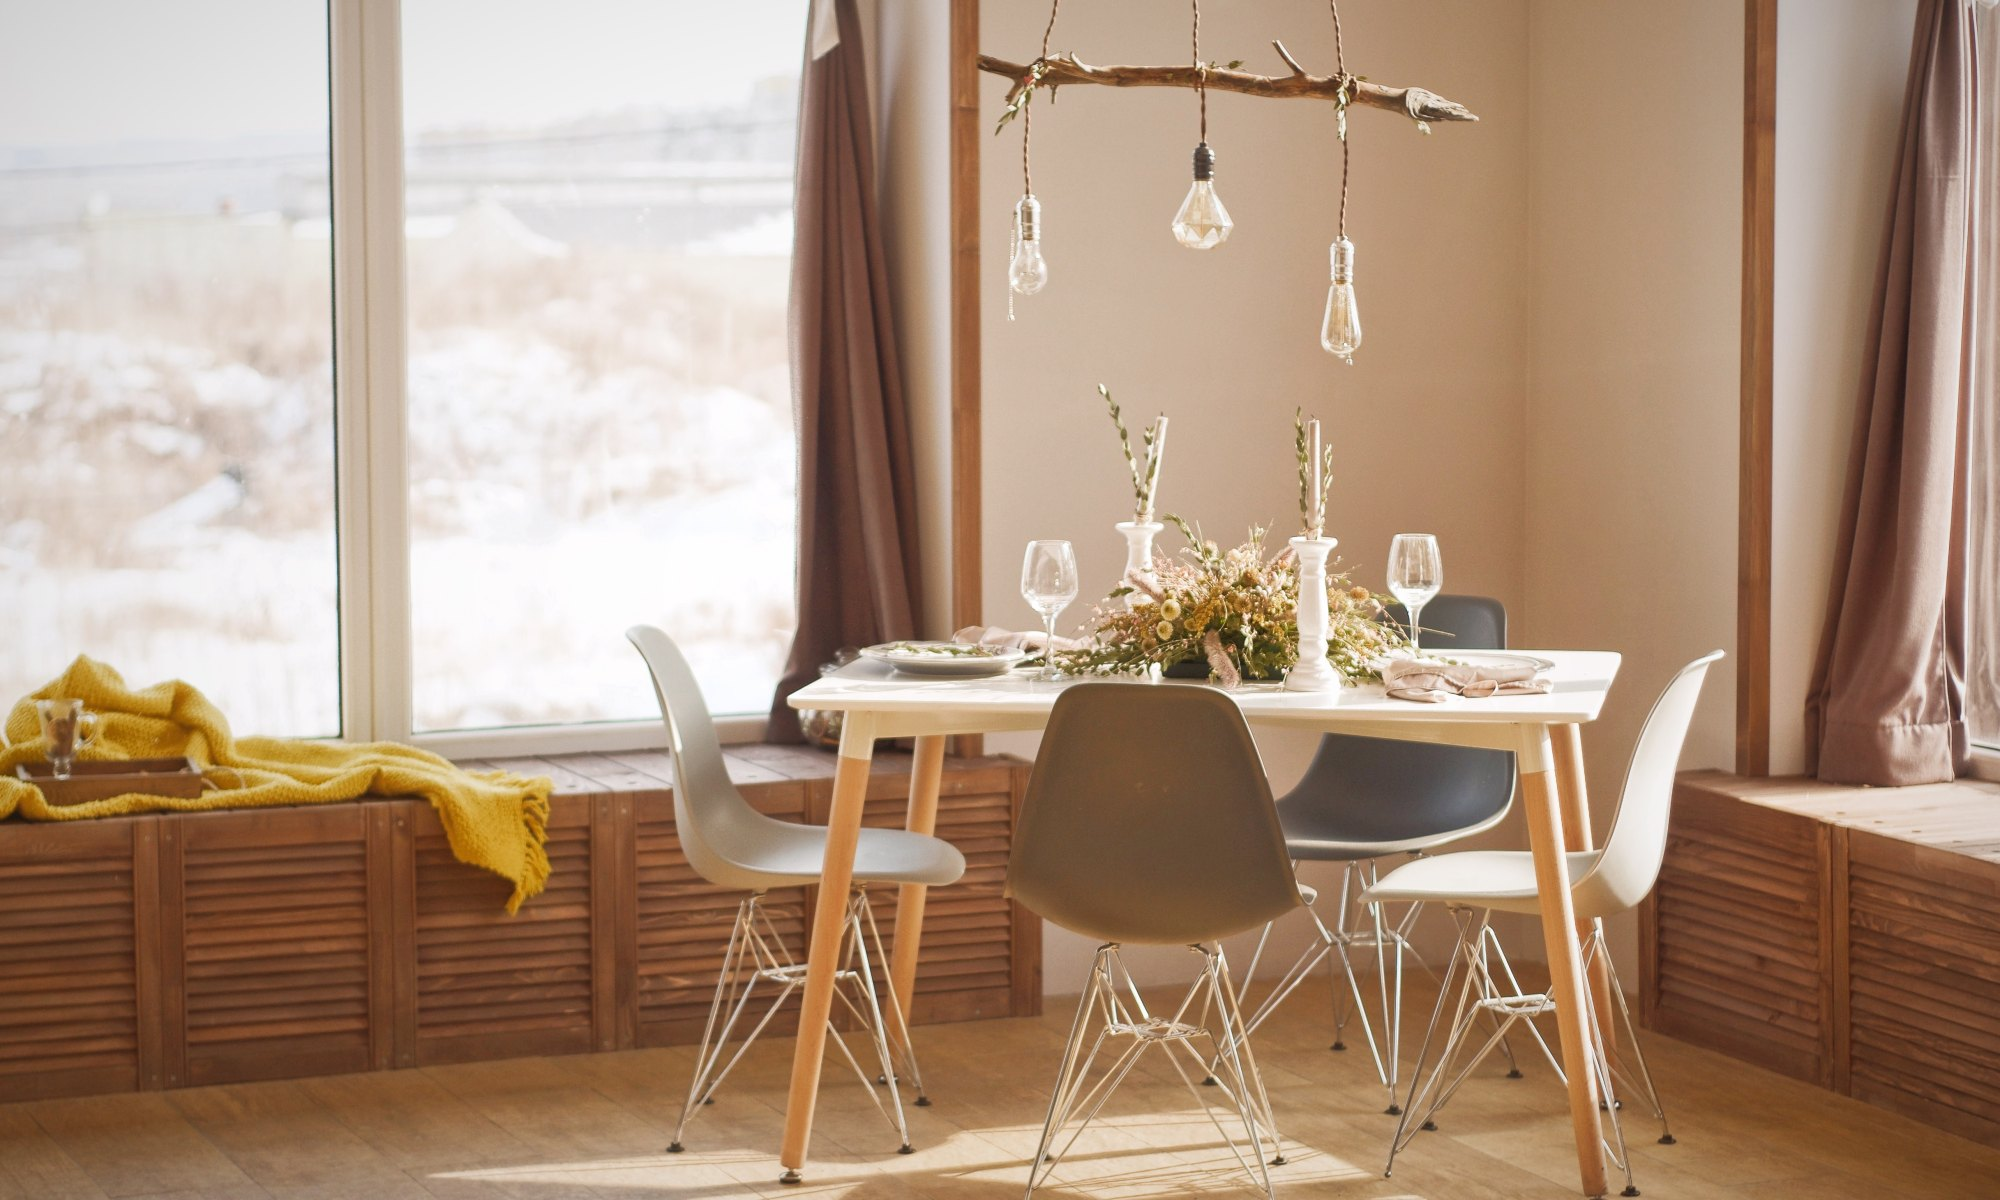 Small dining table and chairs in a corner beside a window